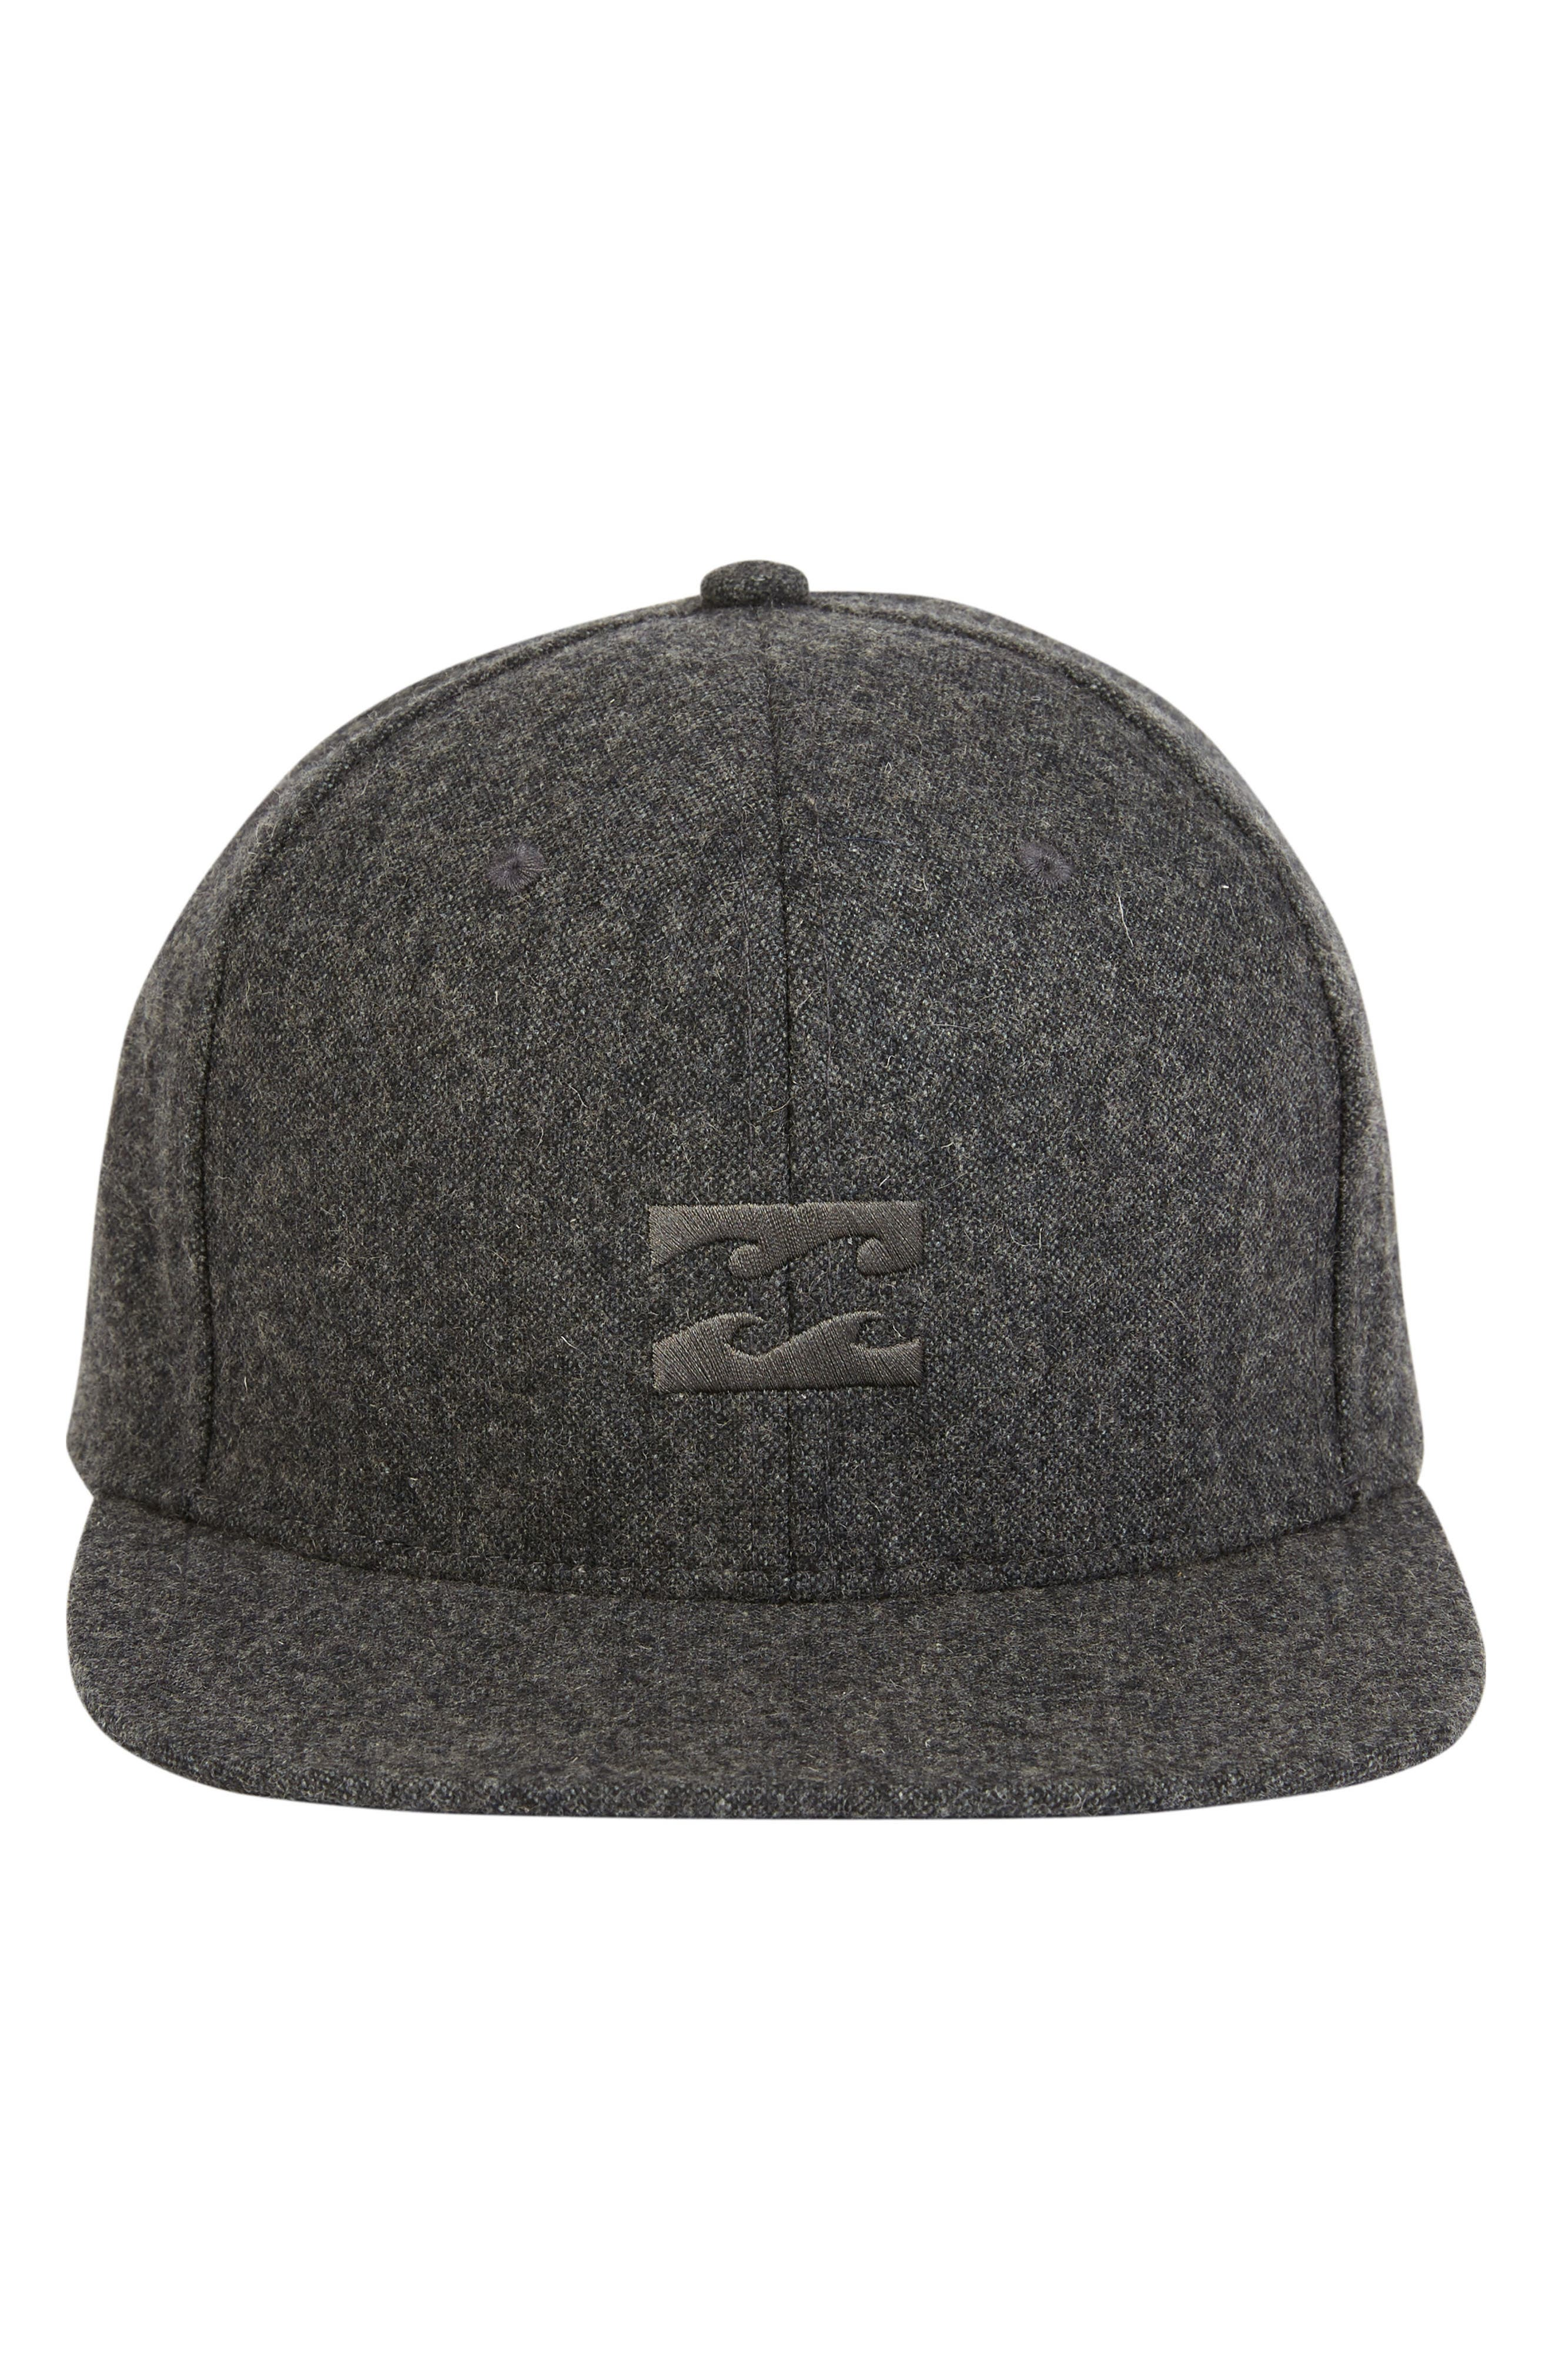 All Day Snapback Cap,                             Alternate thumbnail 2, color,                             BLACK HEATHER